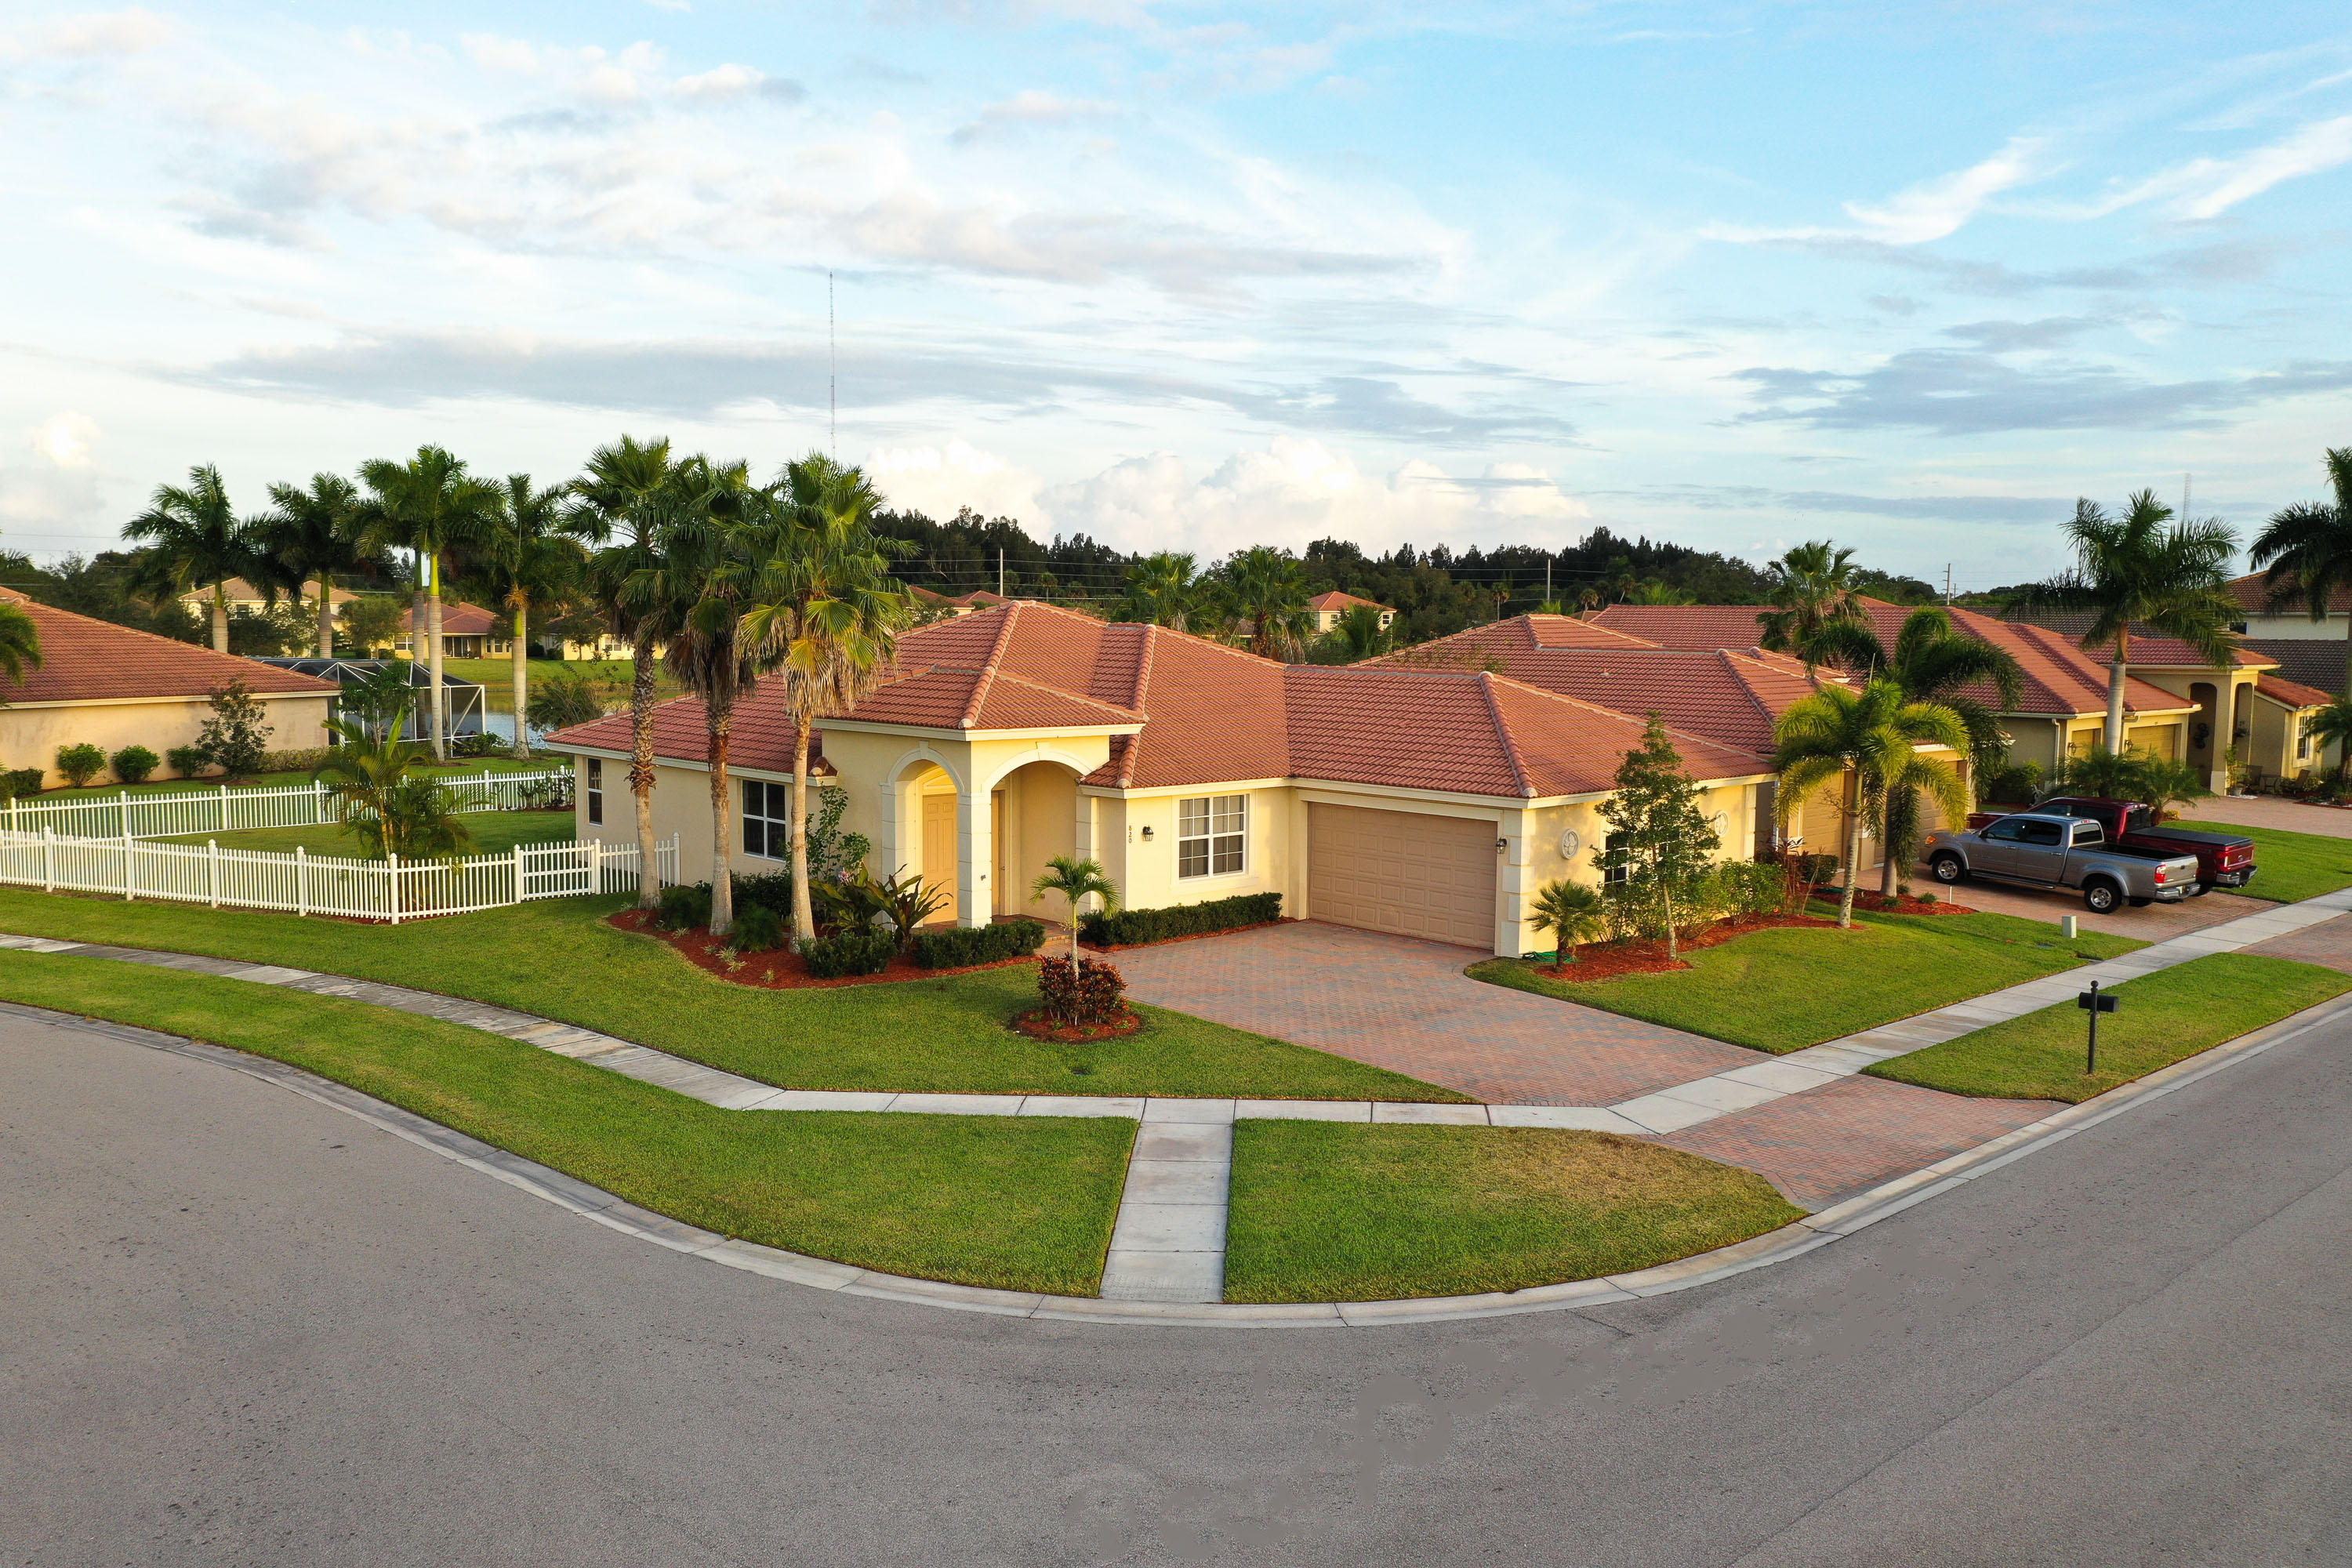 Home for sale in Bent Creek Fort Pierce Florida